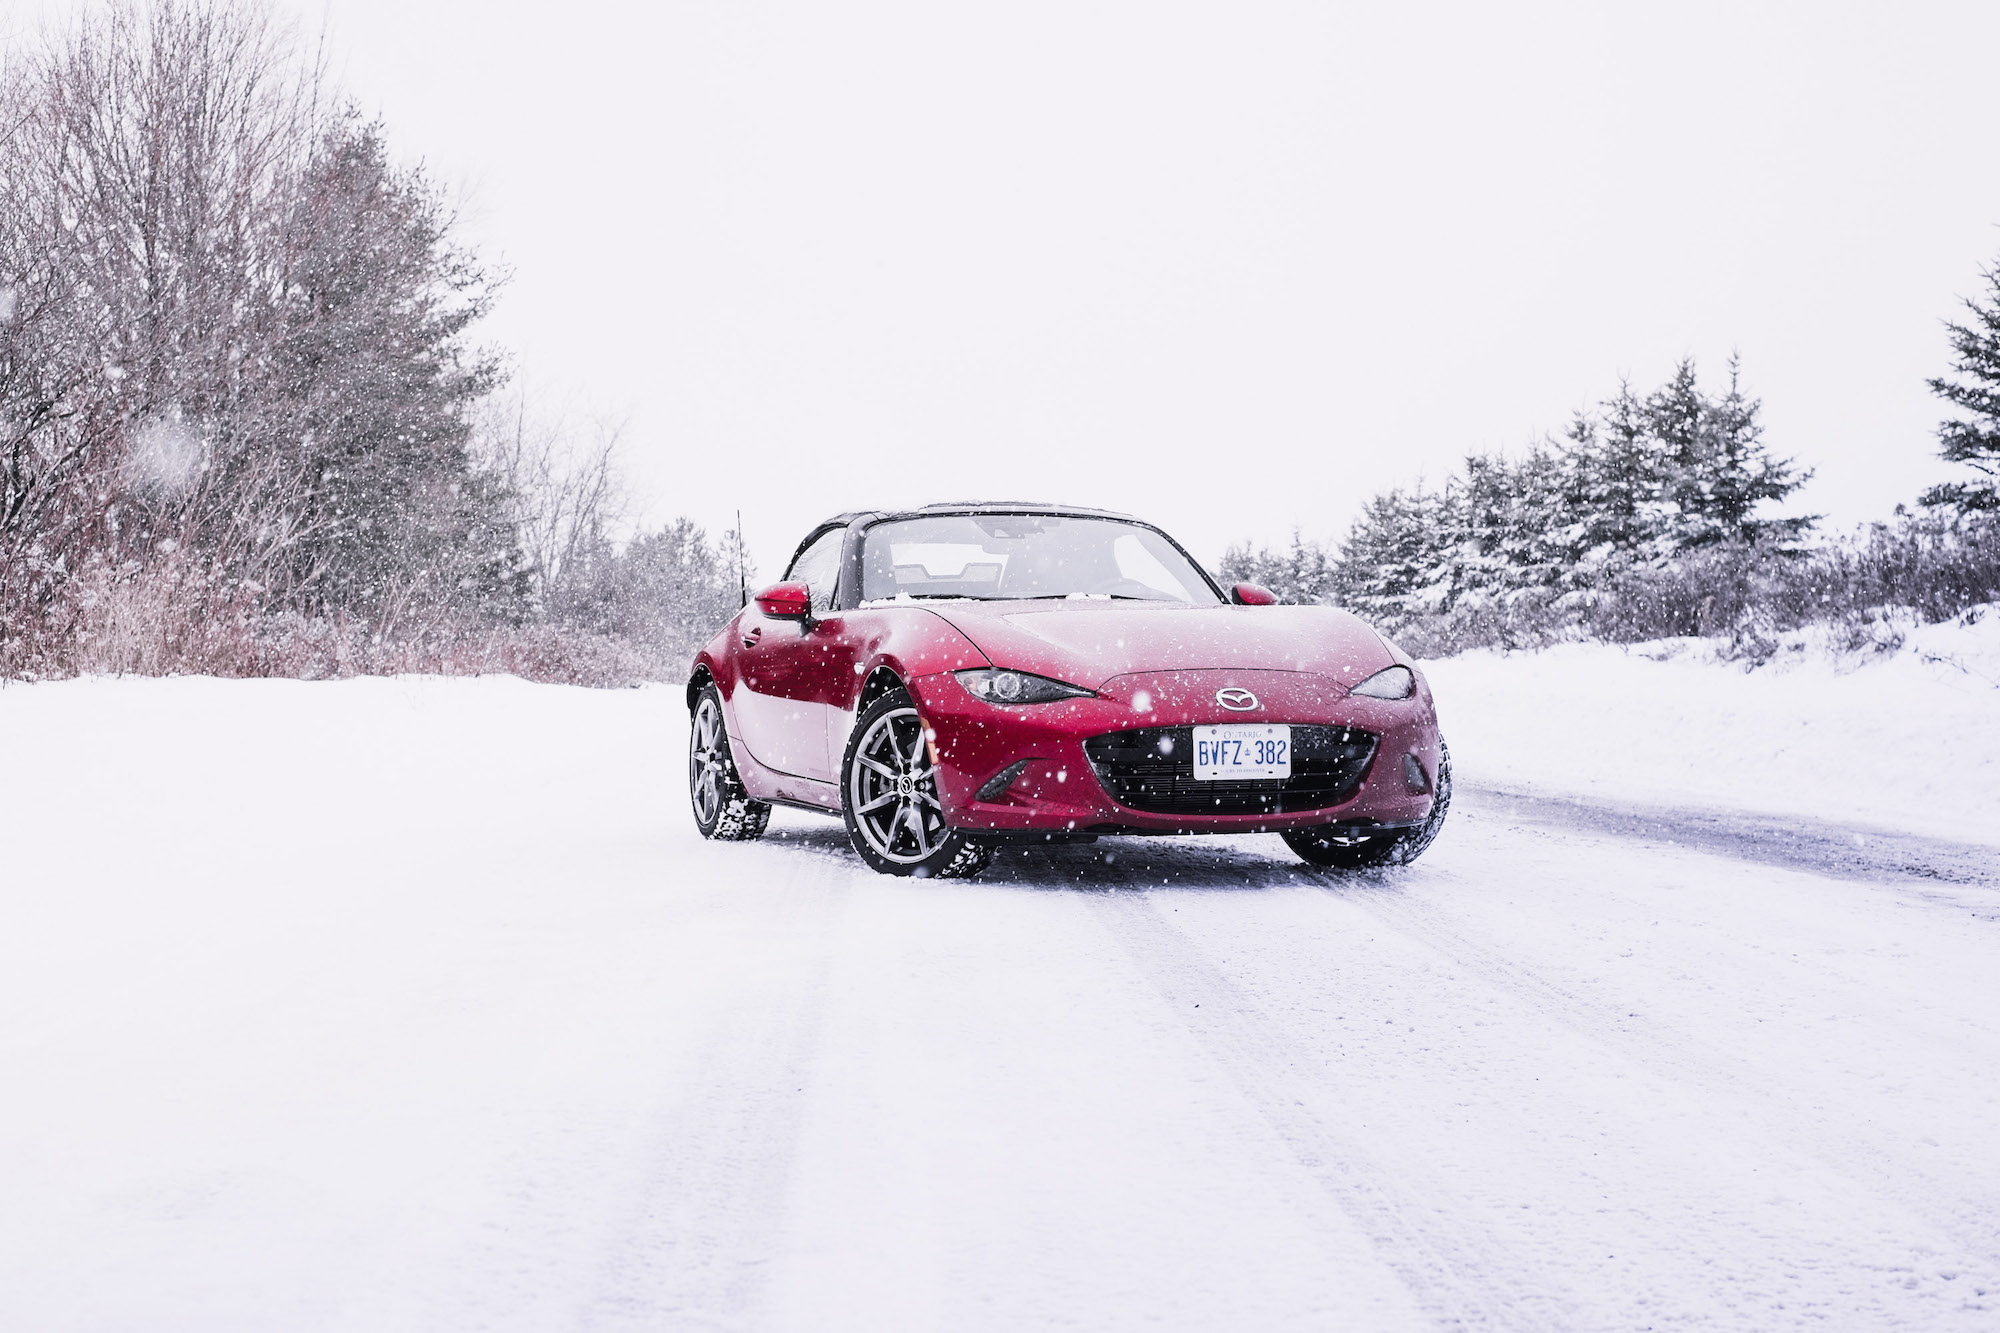 2017 mazda mx 5 gt with snow tires